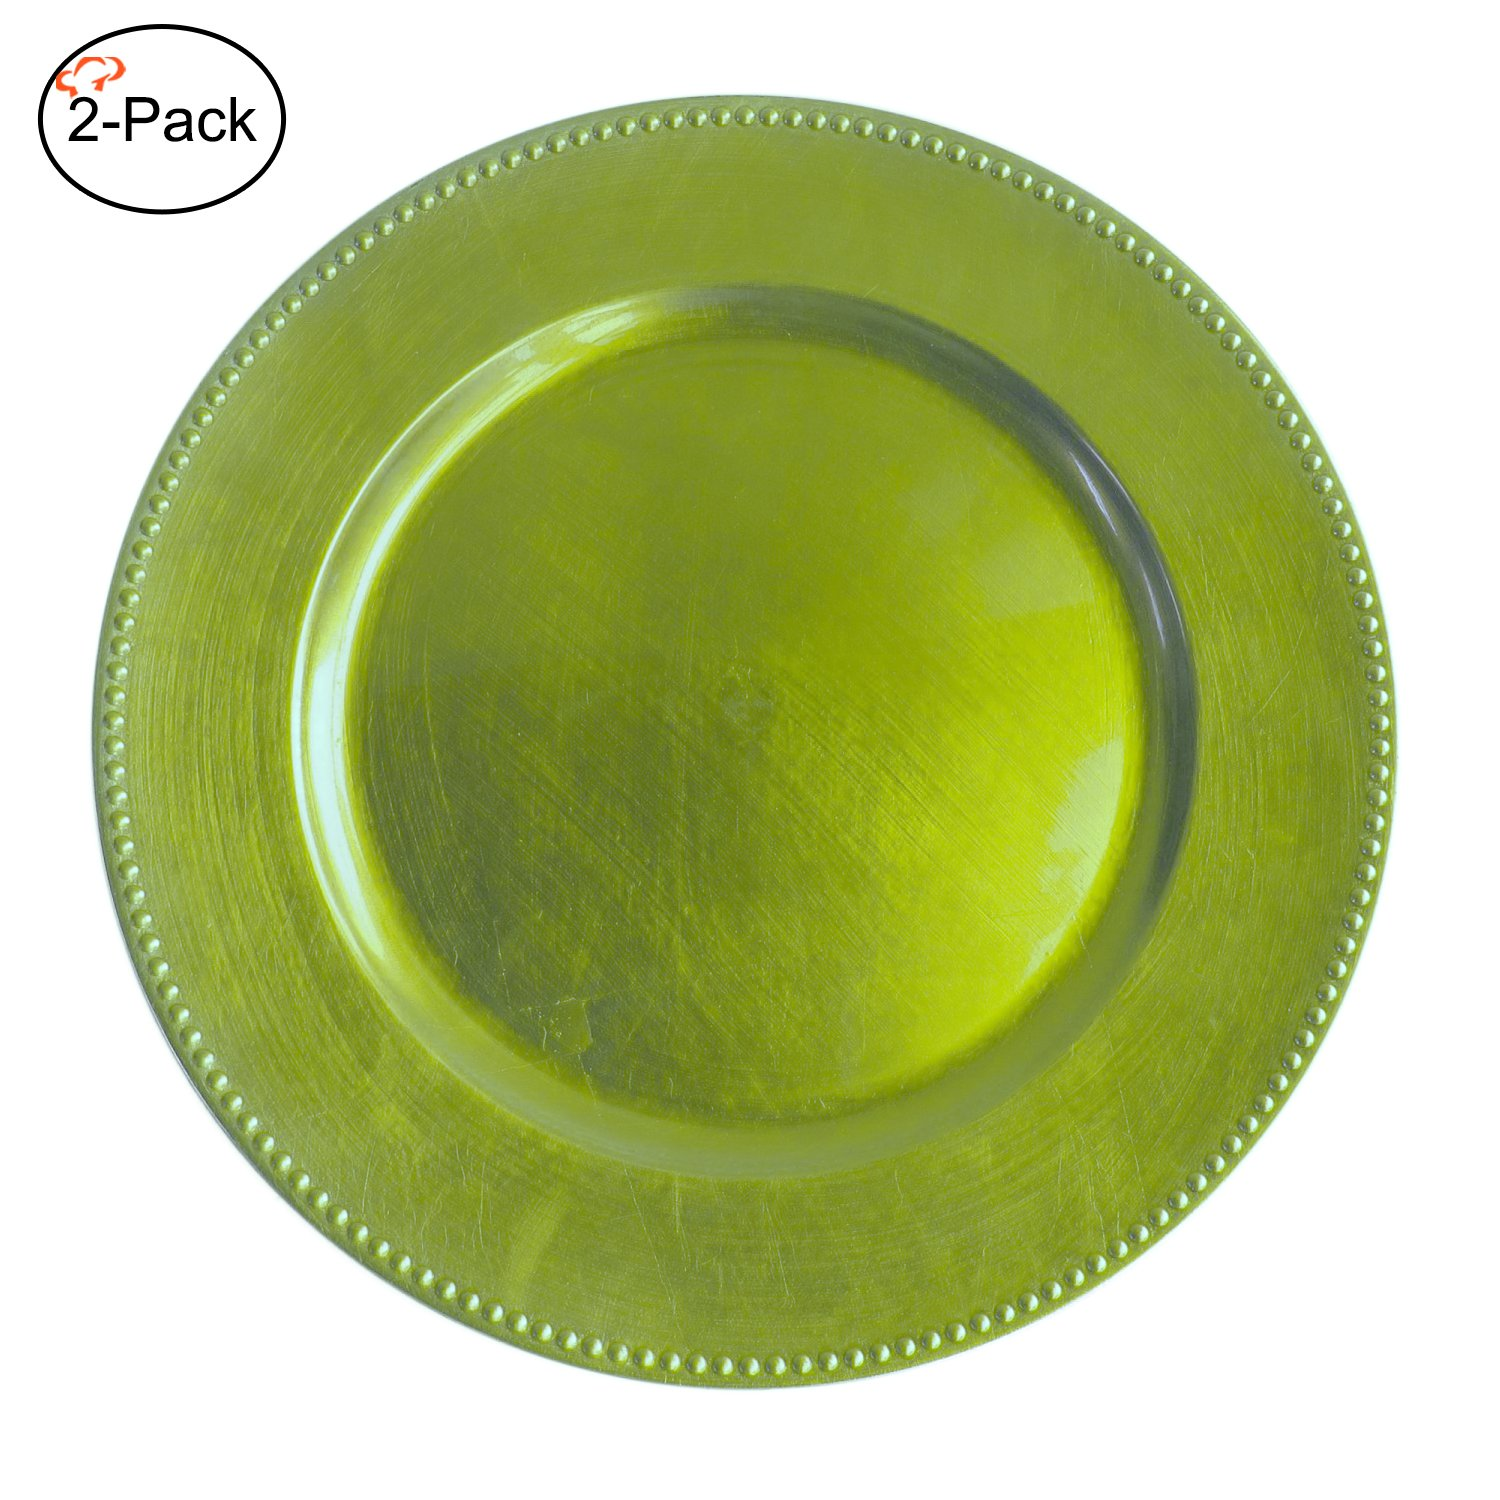 Tiger Chef 13-inch Lime Beaded Charger Plates, Set of 2,4,6, 12 or 24 Dinner Chargers (2-Pack)